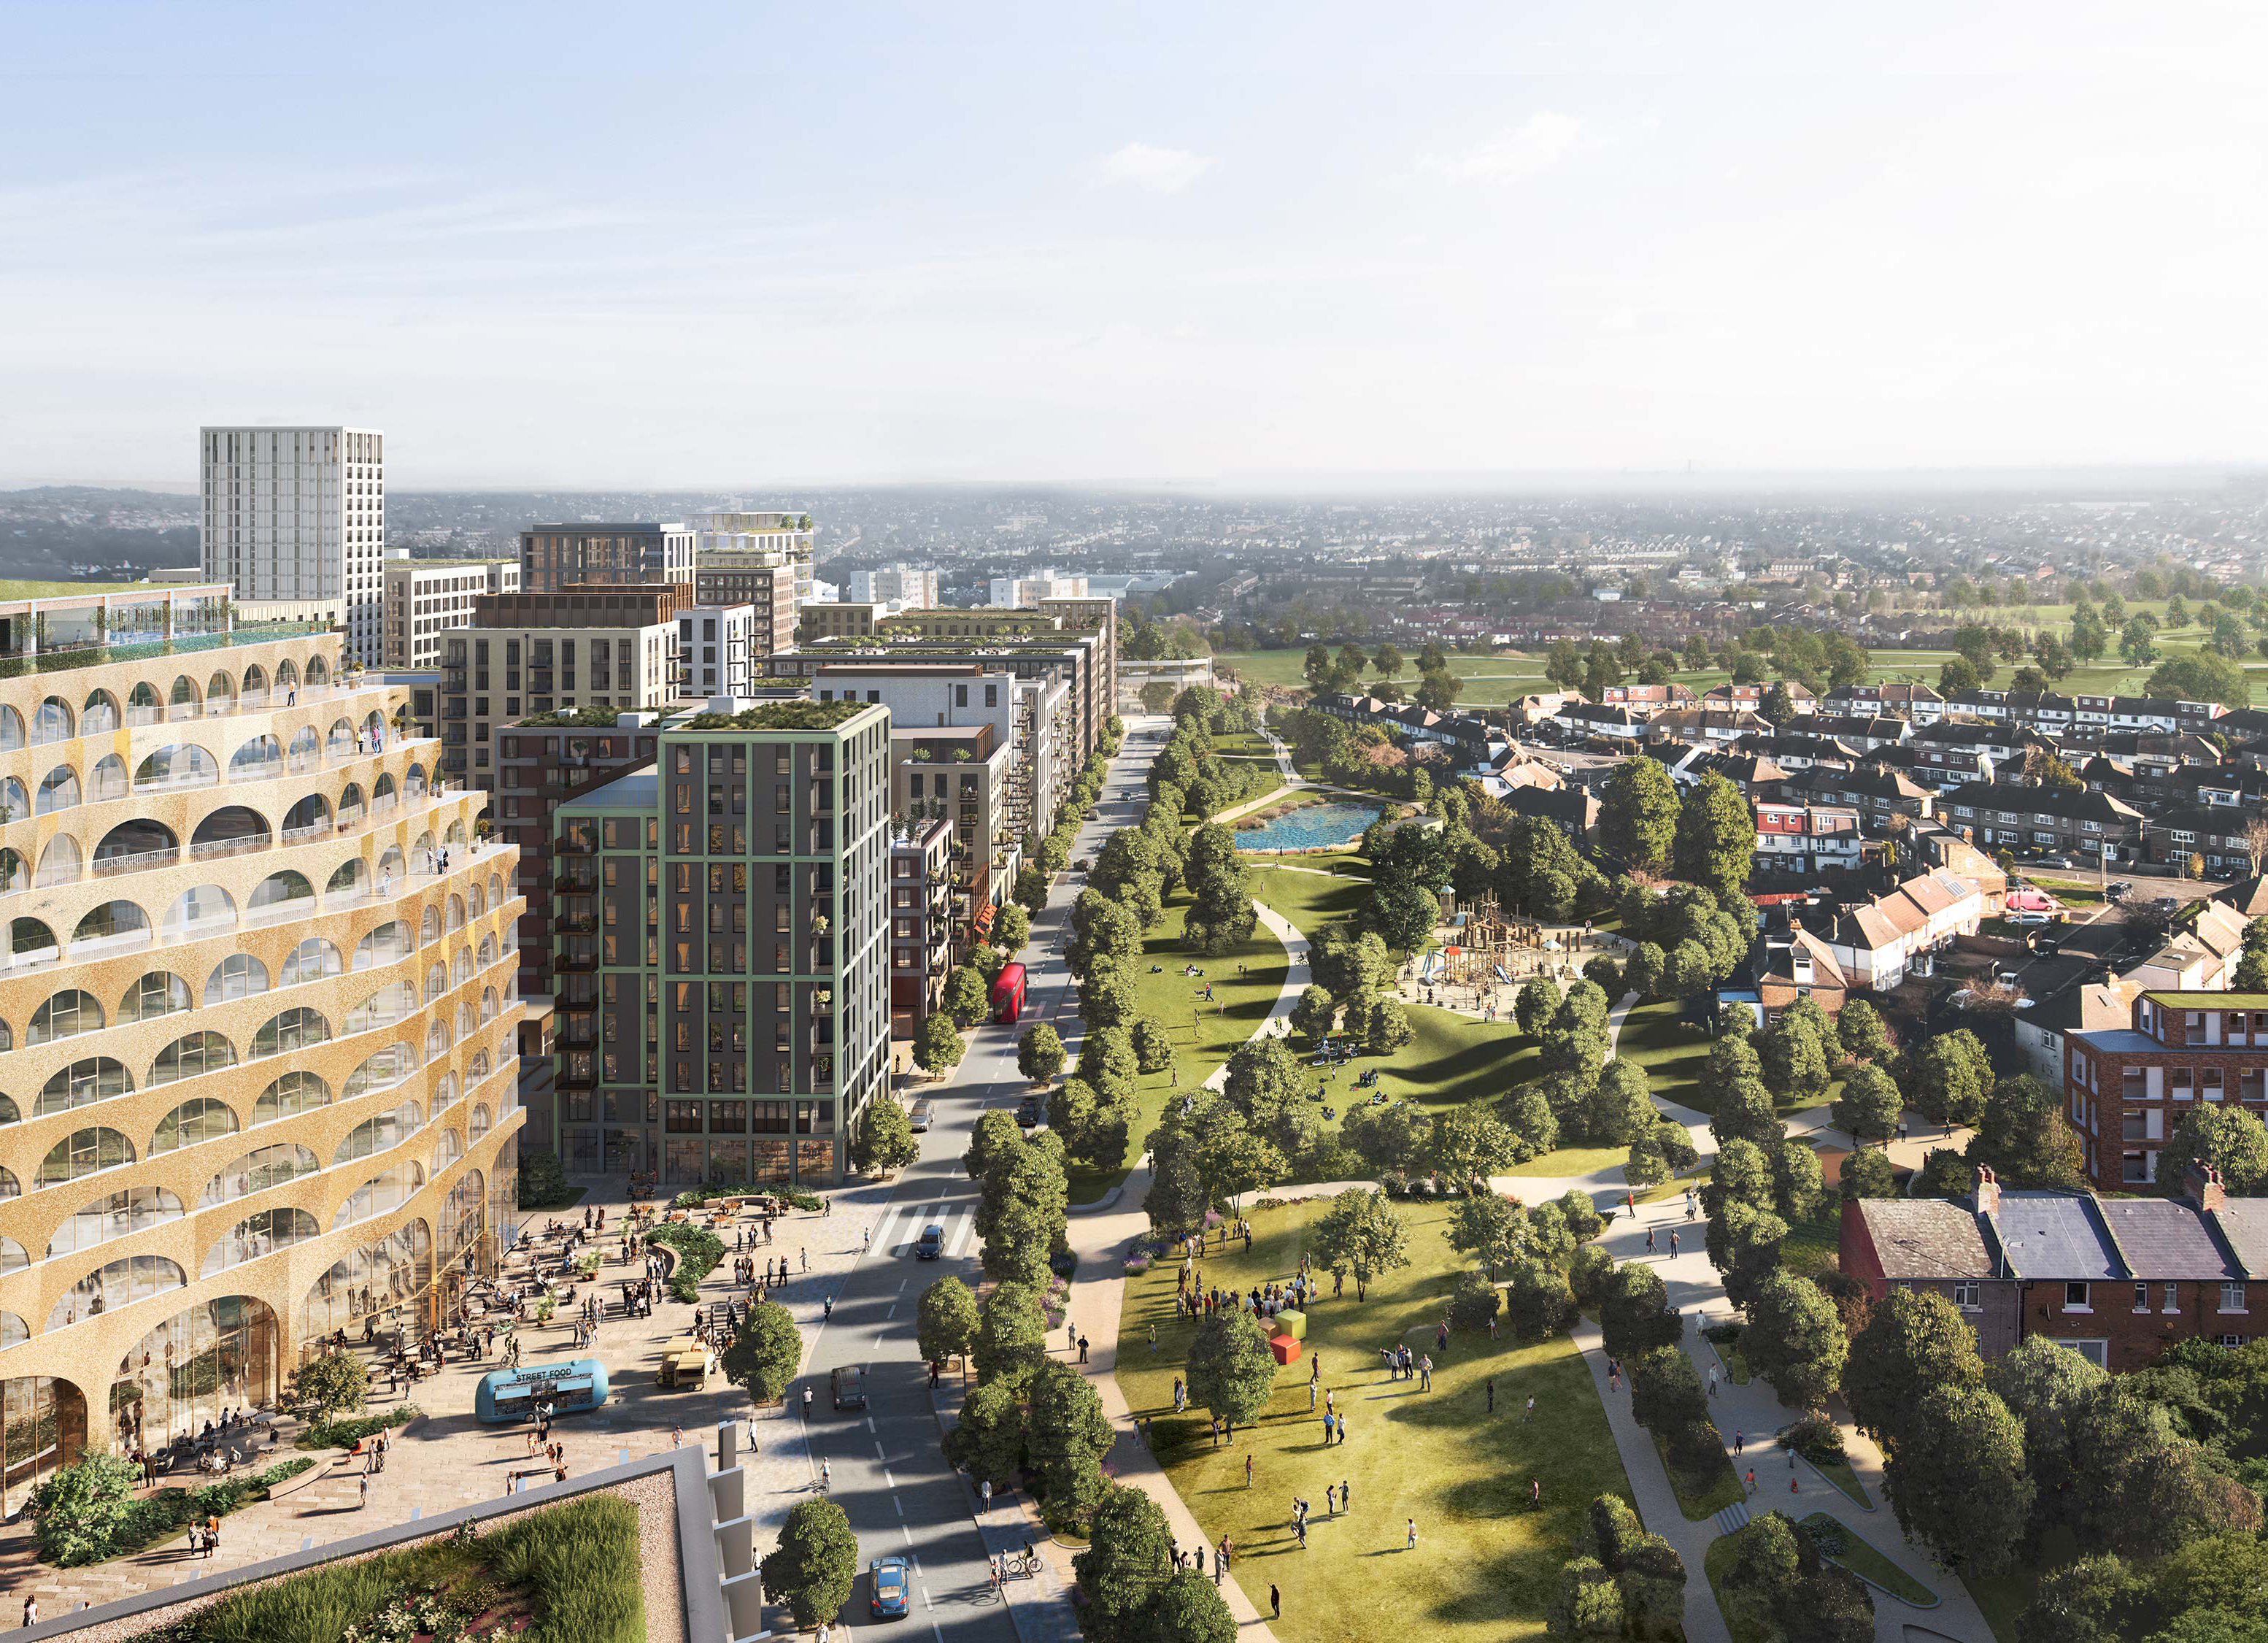 A first look at the regeneration project in Brent Cross Town.